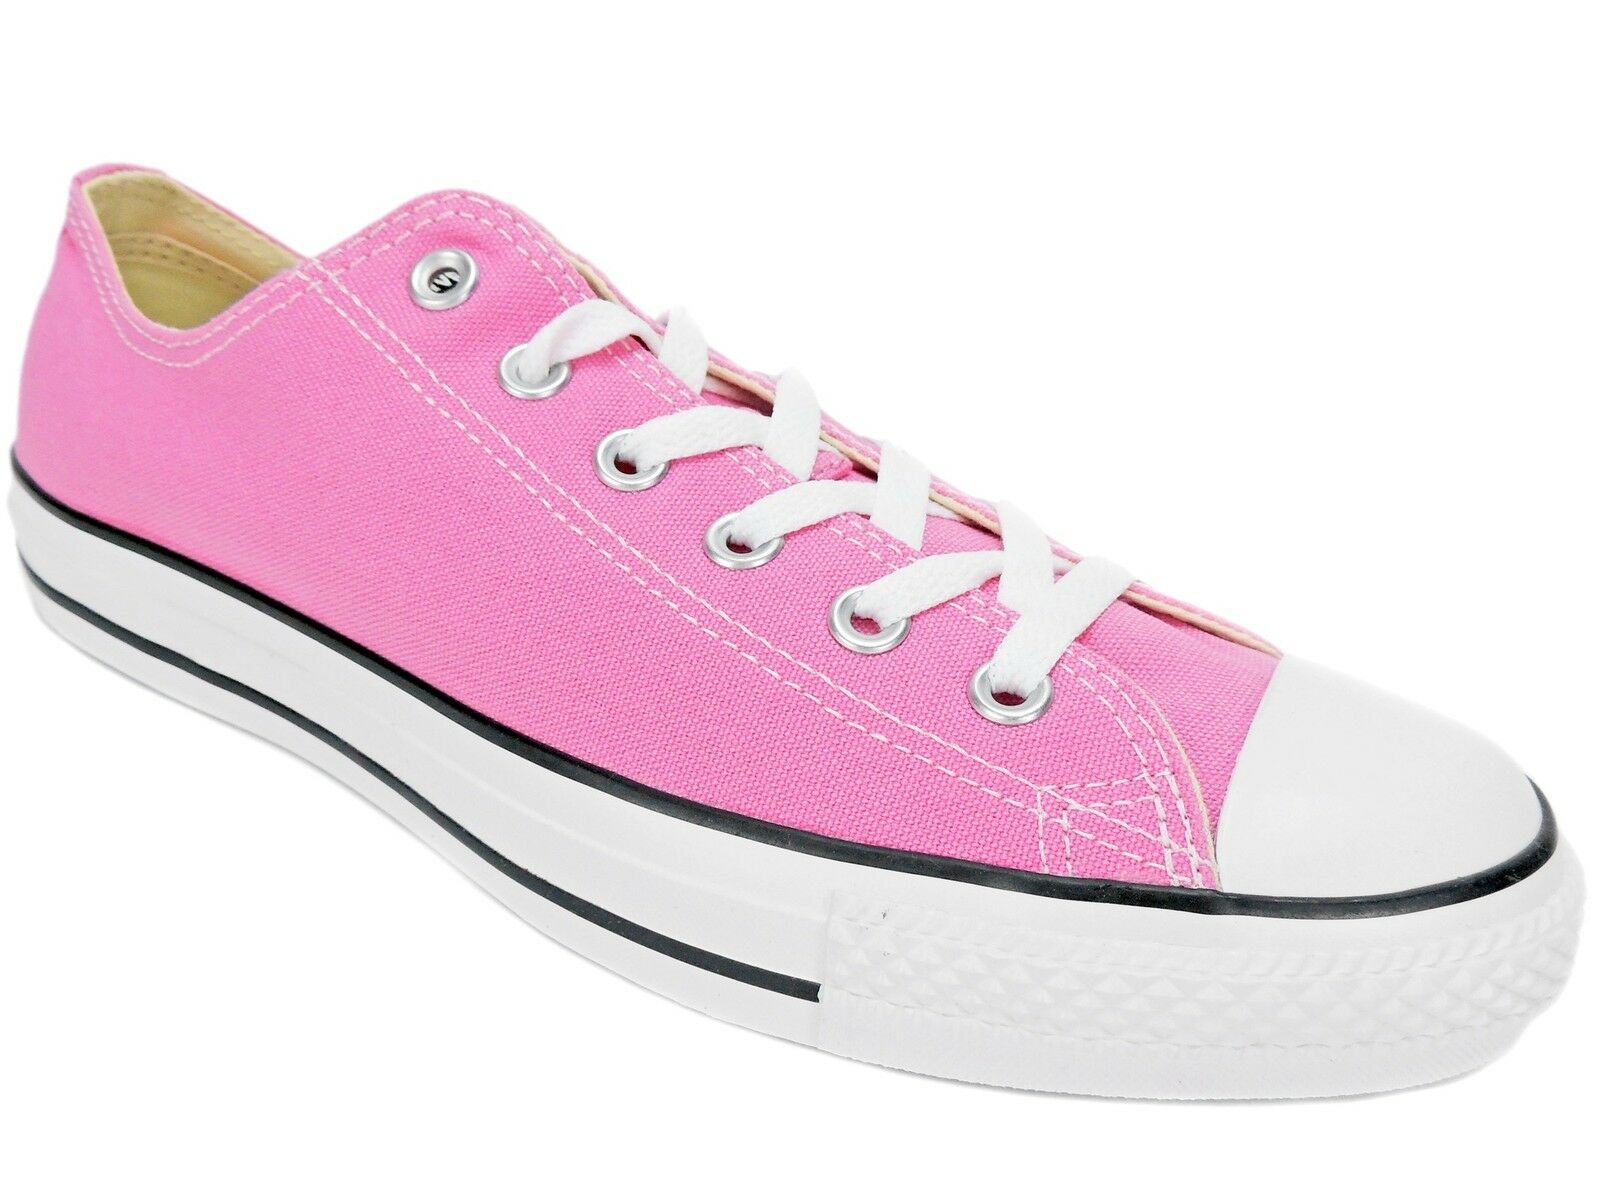 Converse All Star Unisex Oxford Sneakers Low Profile Pink Canvas M10.5 W12.5 Scarpe classiche da uomo